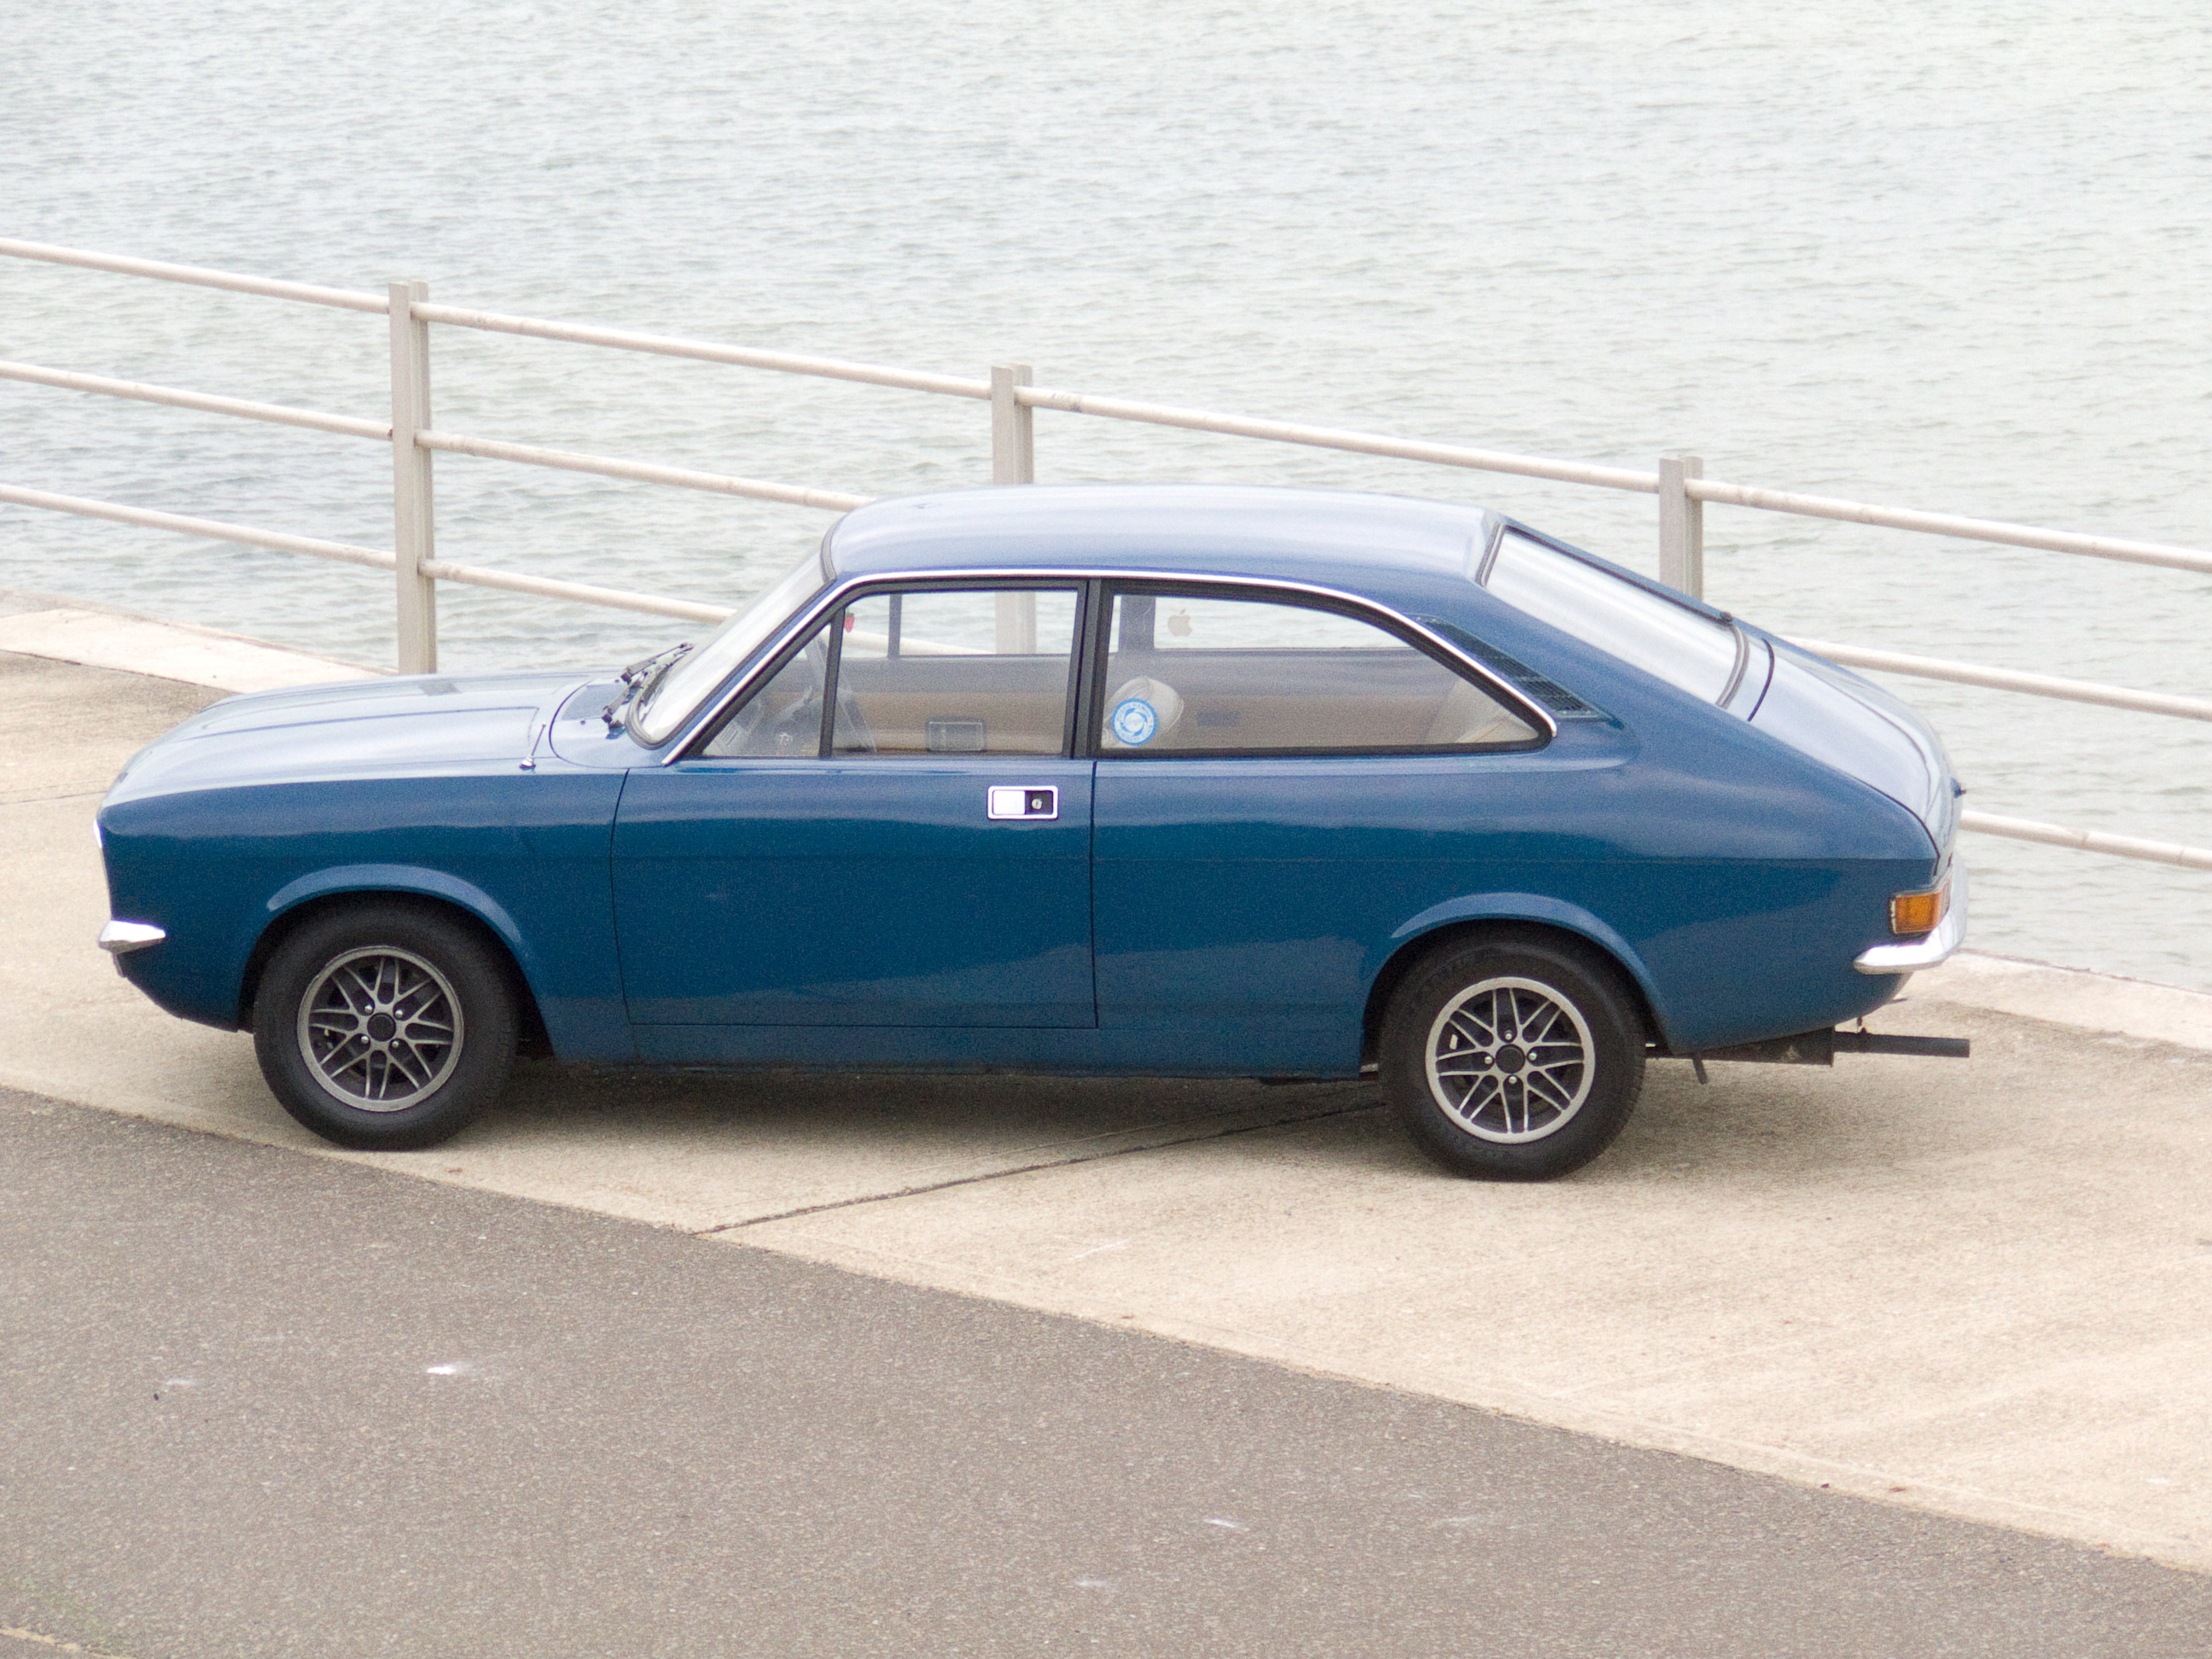 File:Morris Marina Coupe.jpg - Wikimedia Commons